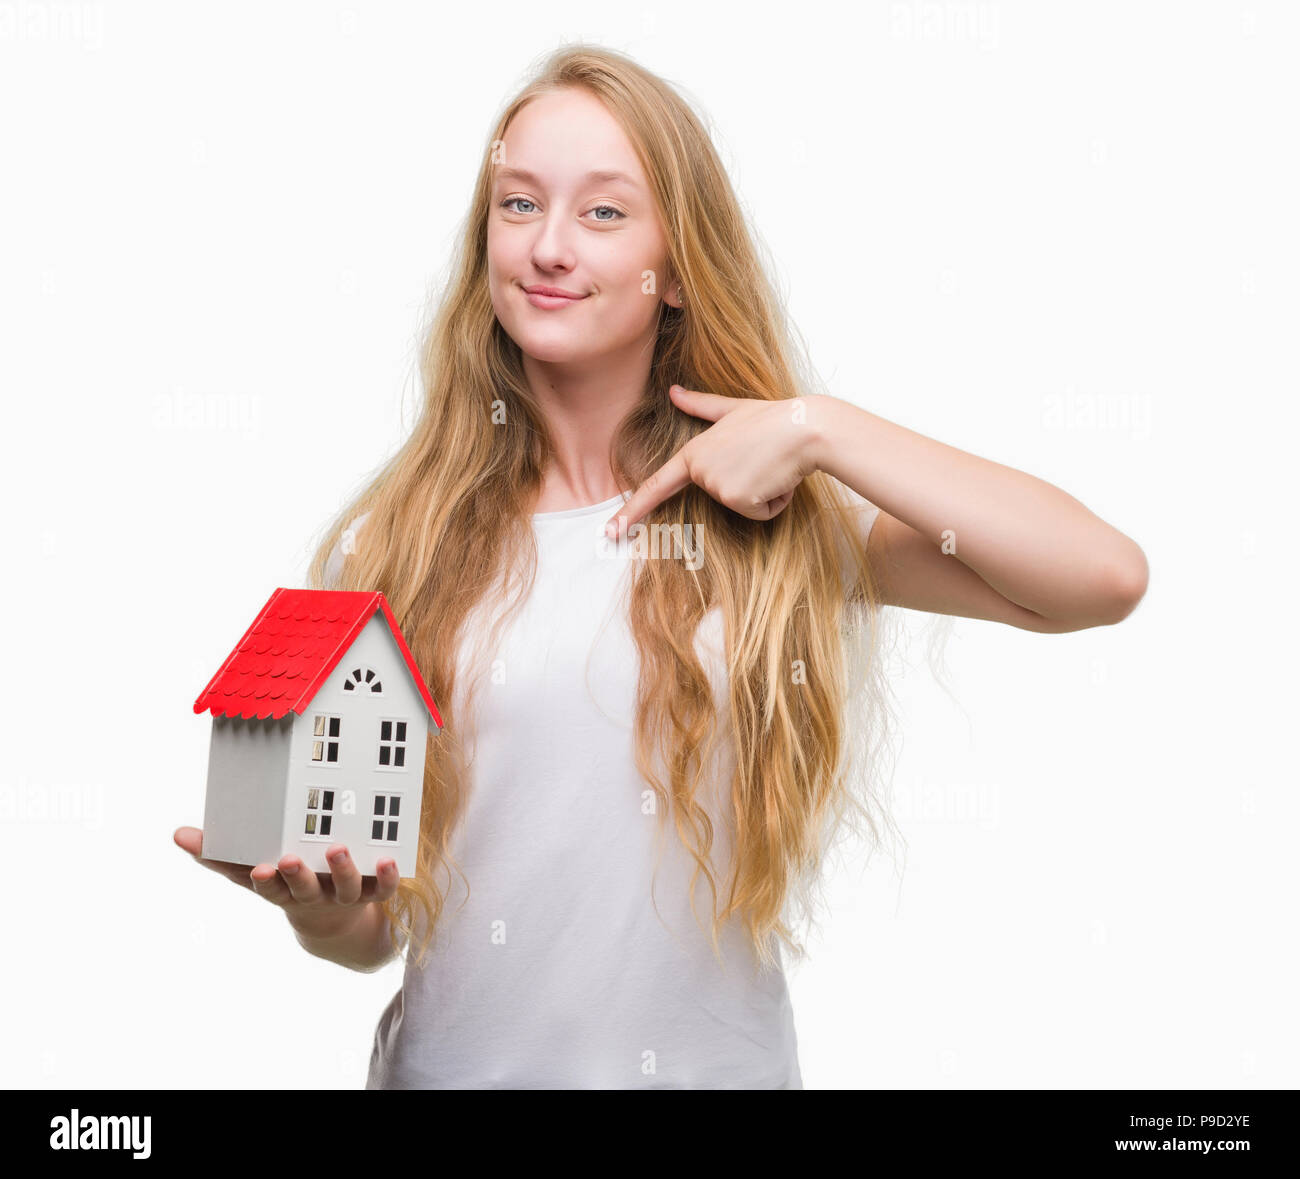 Blonde teenager woman holding family house with surprise face pointing finger to himself - Stock Image